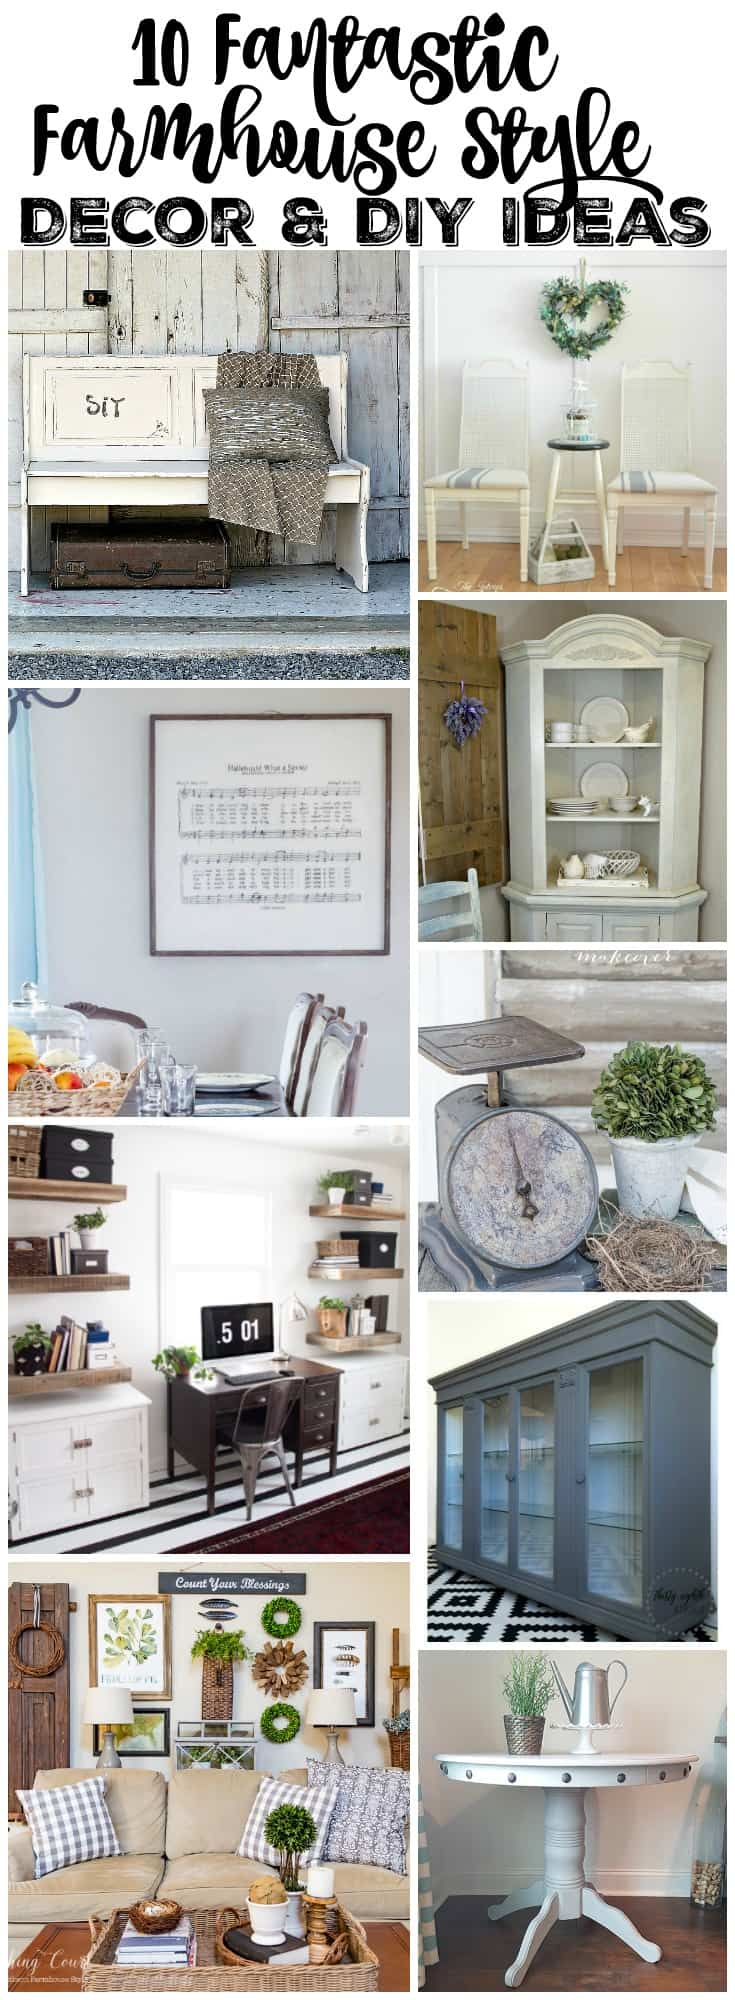 10 FARMHOUSE STYLE DECOR & DIY IDEAS - PLACE OF MY TASTE